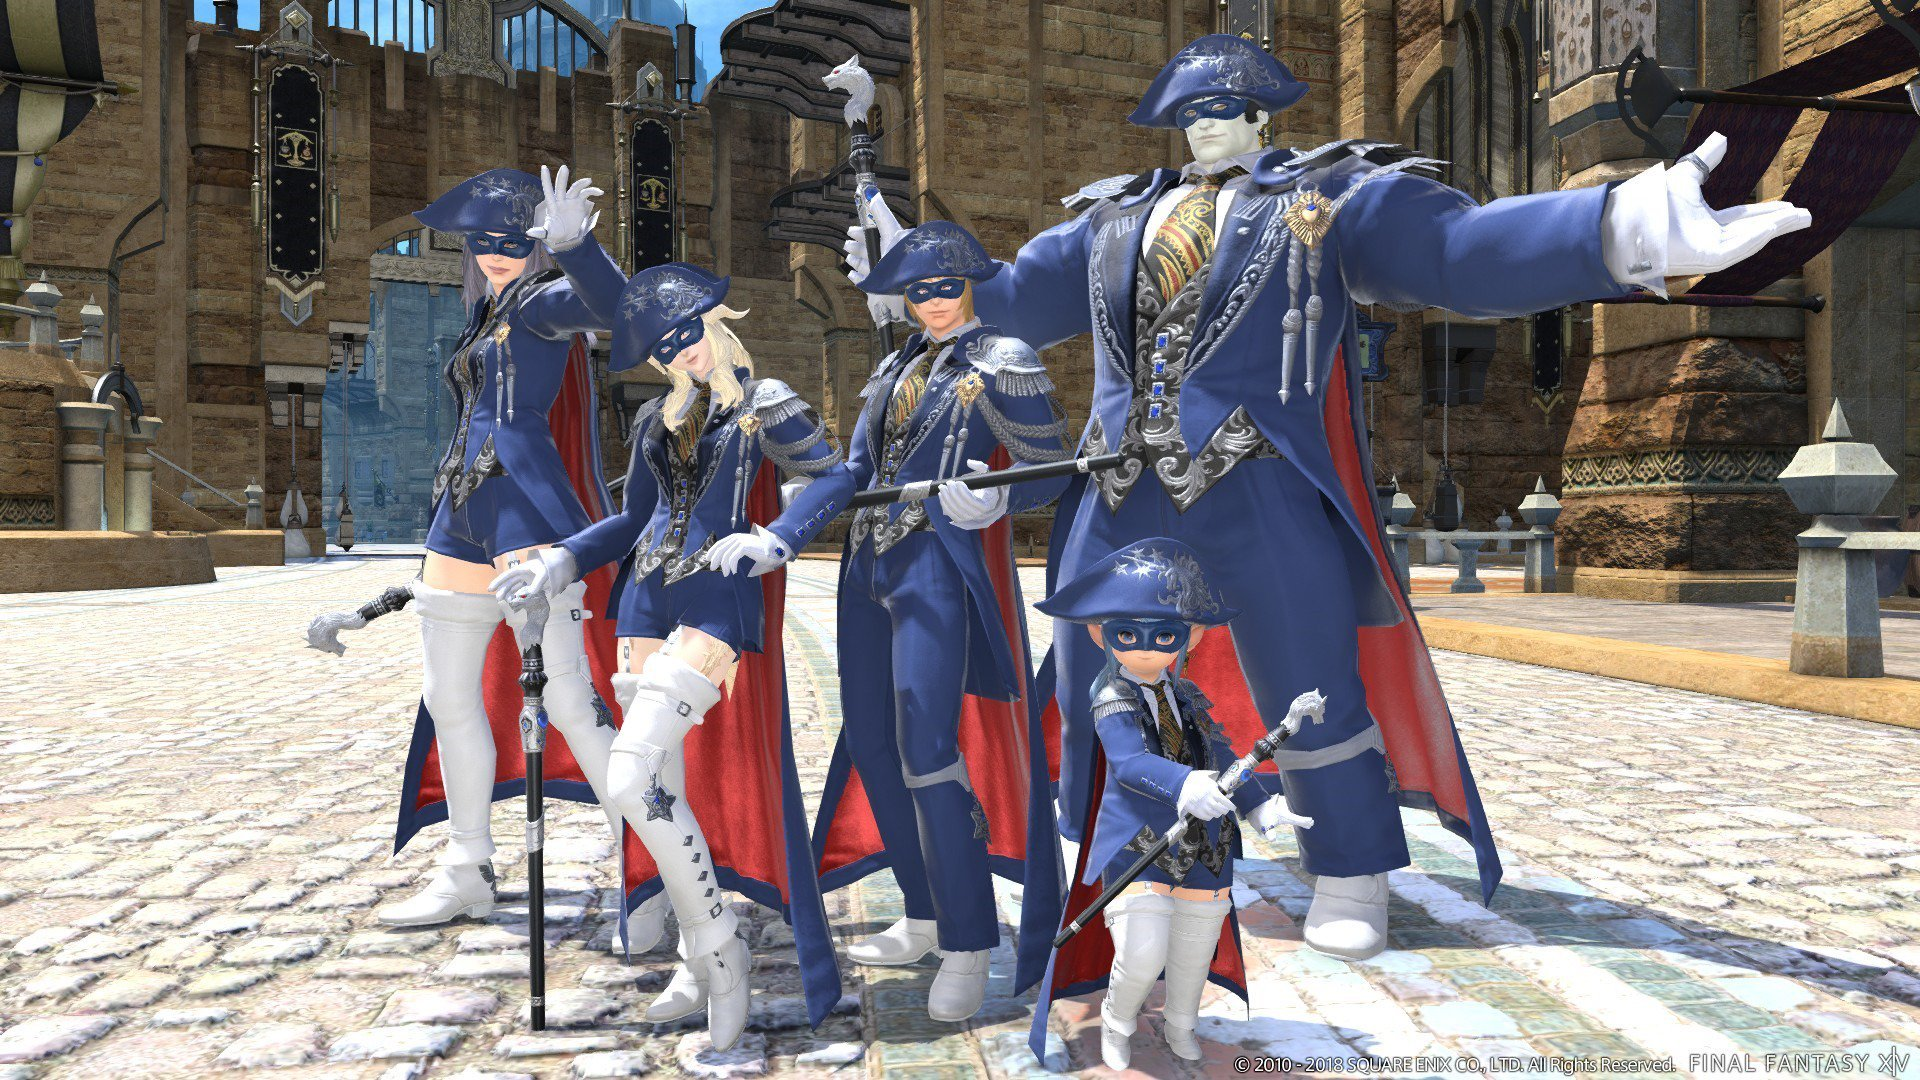 Final Fantasy XIV's upcoming 4.5 patch is kind of a big deal as it adds the all-new Blue Mage job screenshot